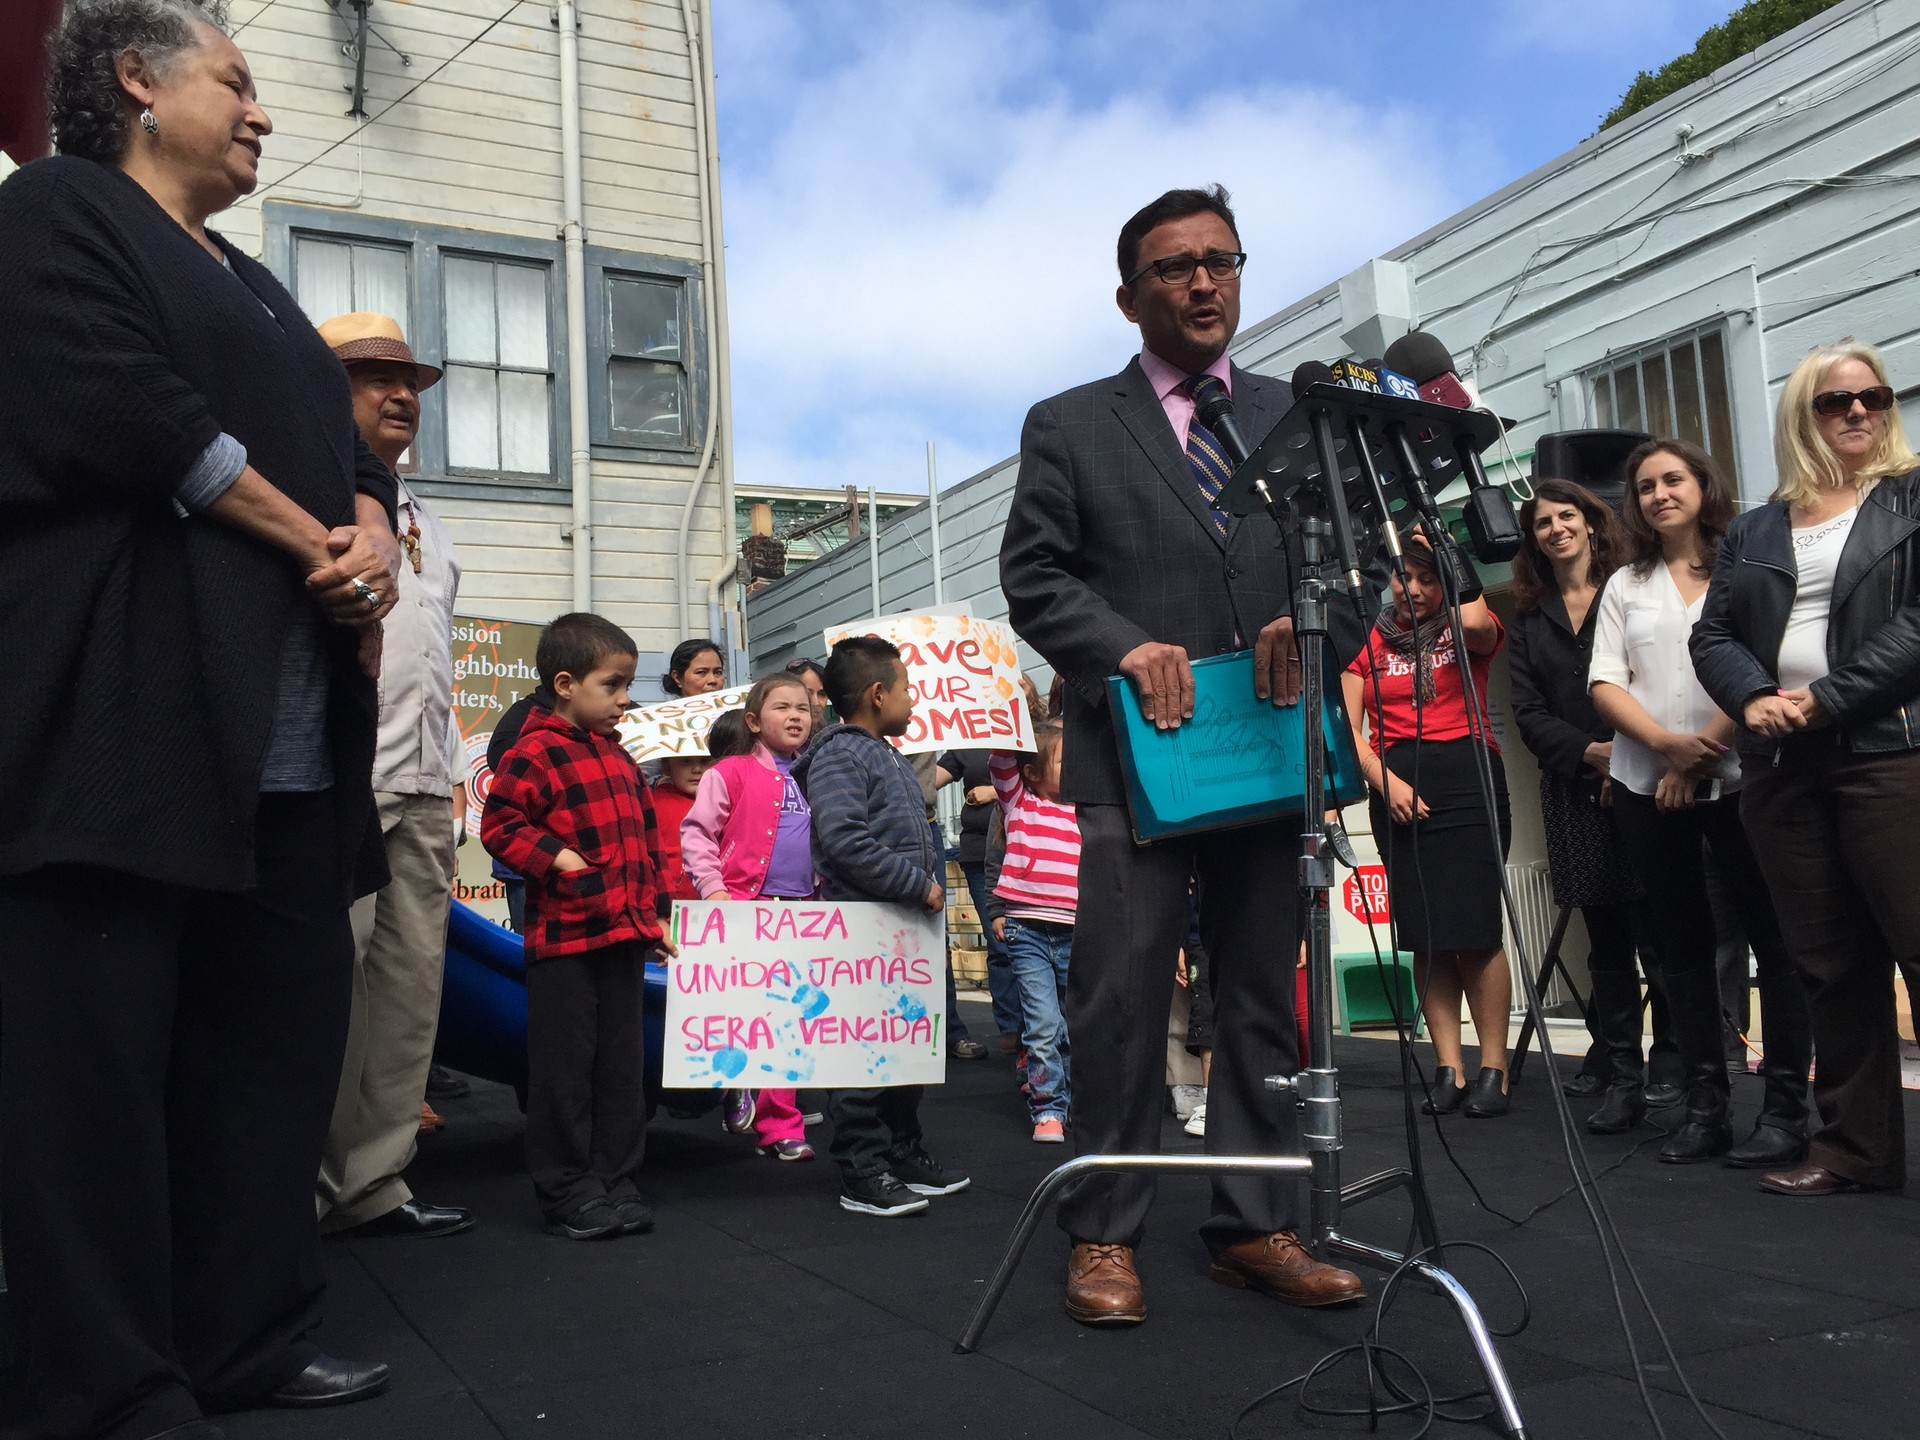 San Francisco Supervisor David Campos, outside the Mission Neighborhood Center, unveils a proposal to halt market-rate housing developments in the city's Mission District for two years.